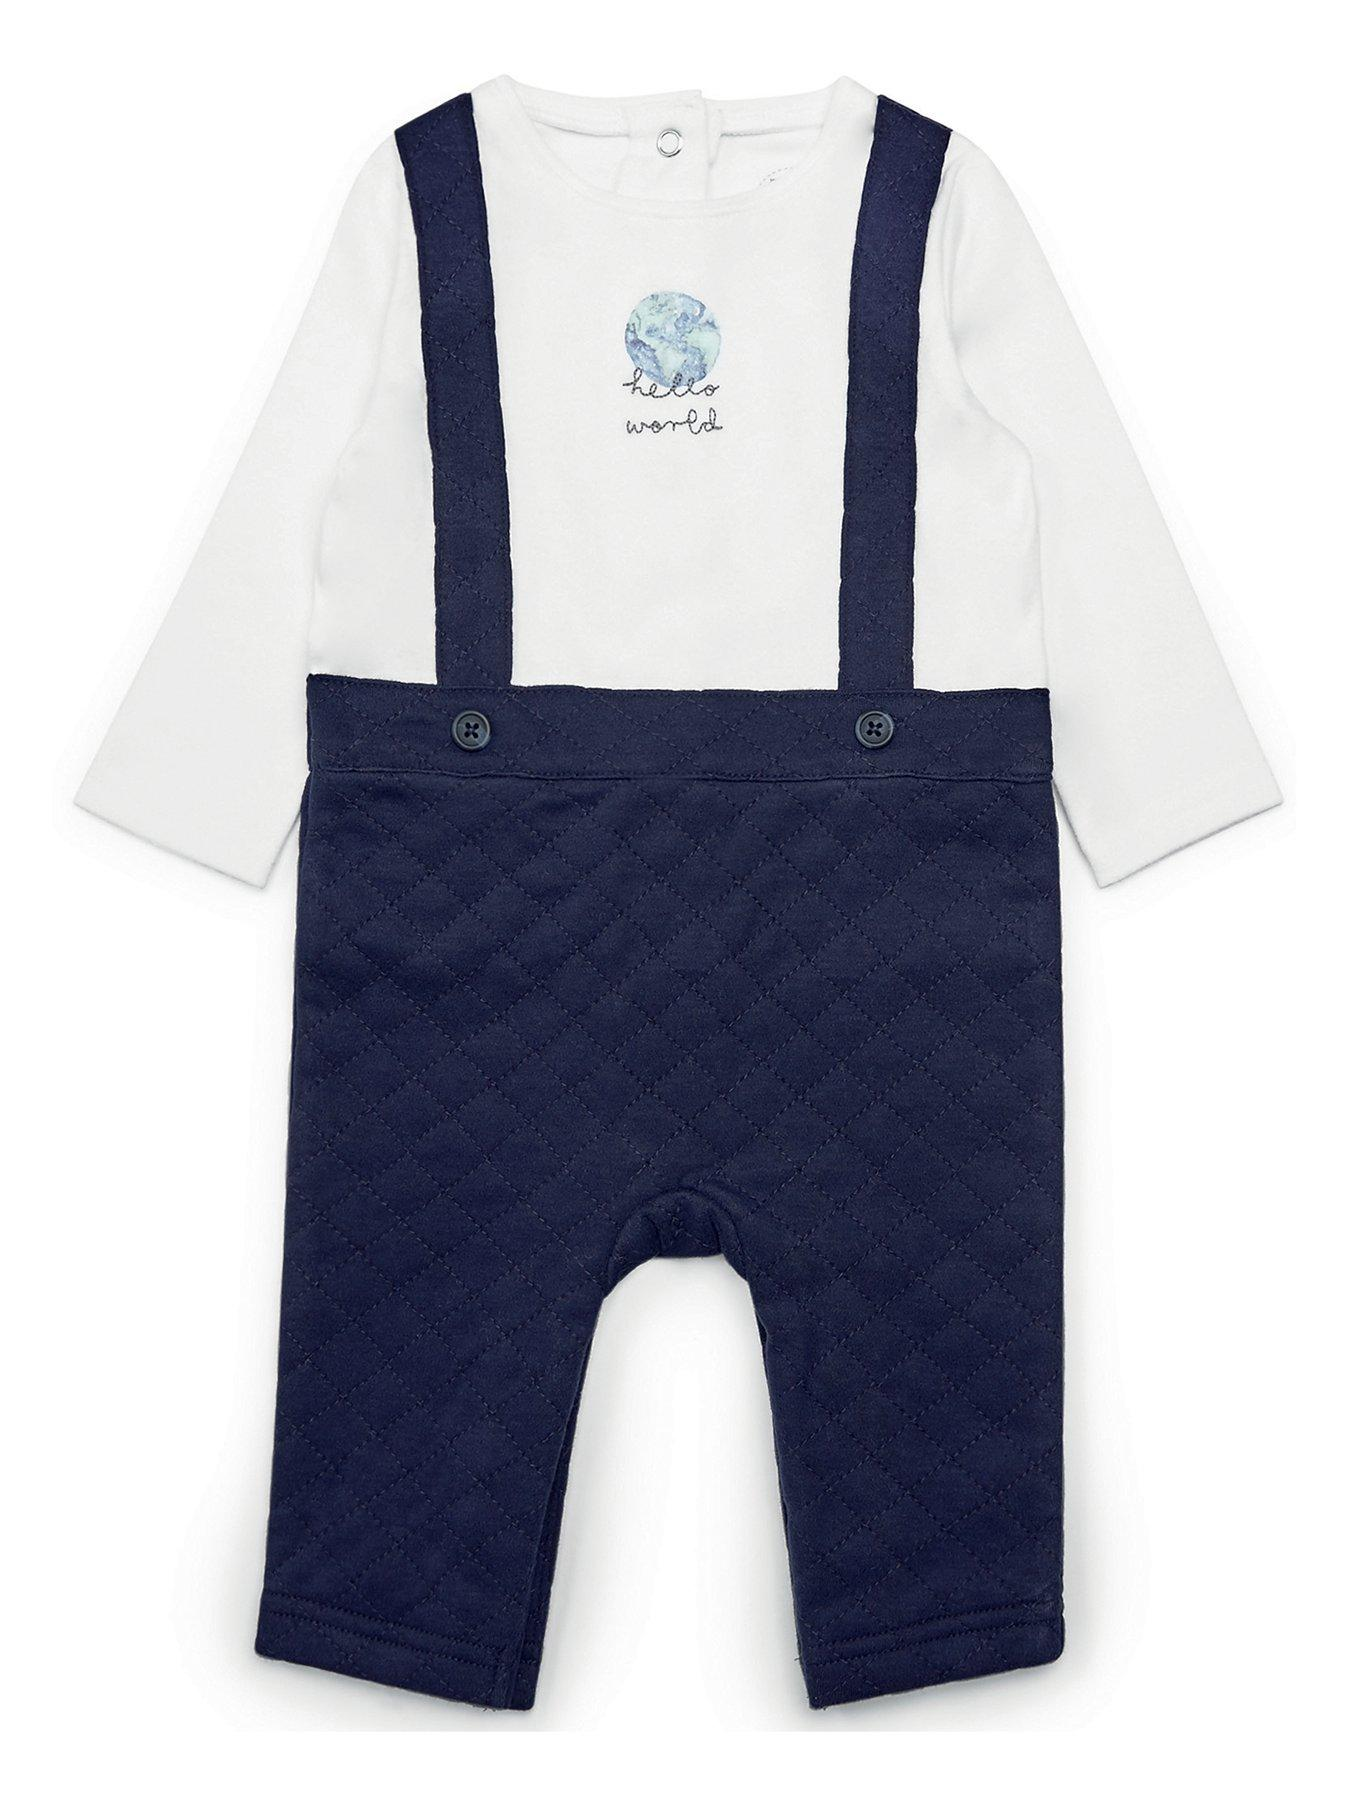 Mamas /& Papas Woven Short and Tee Set Welcome to The World Blue 0-3 Months